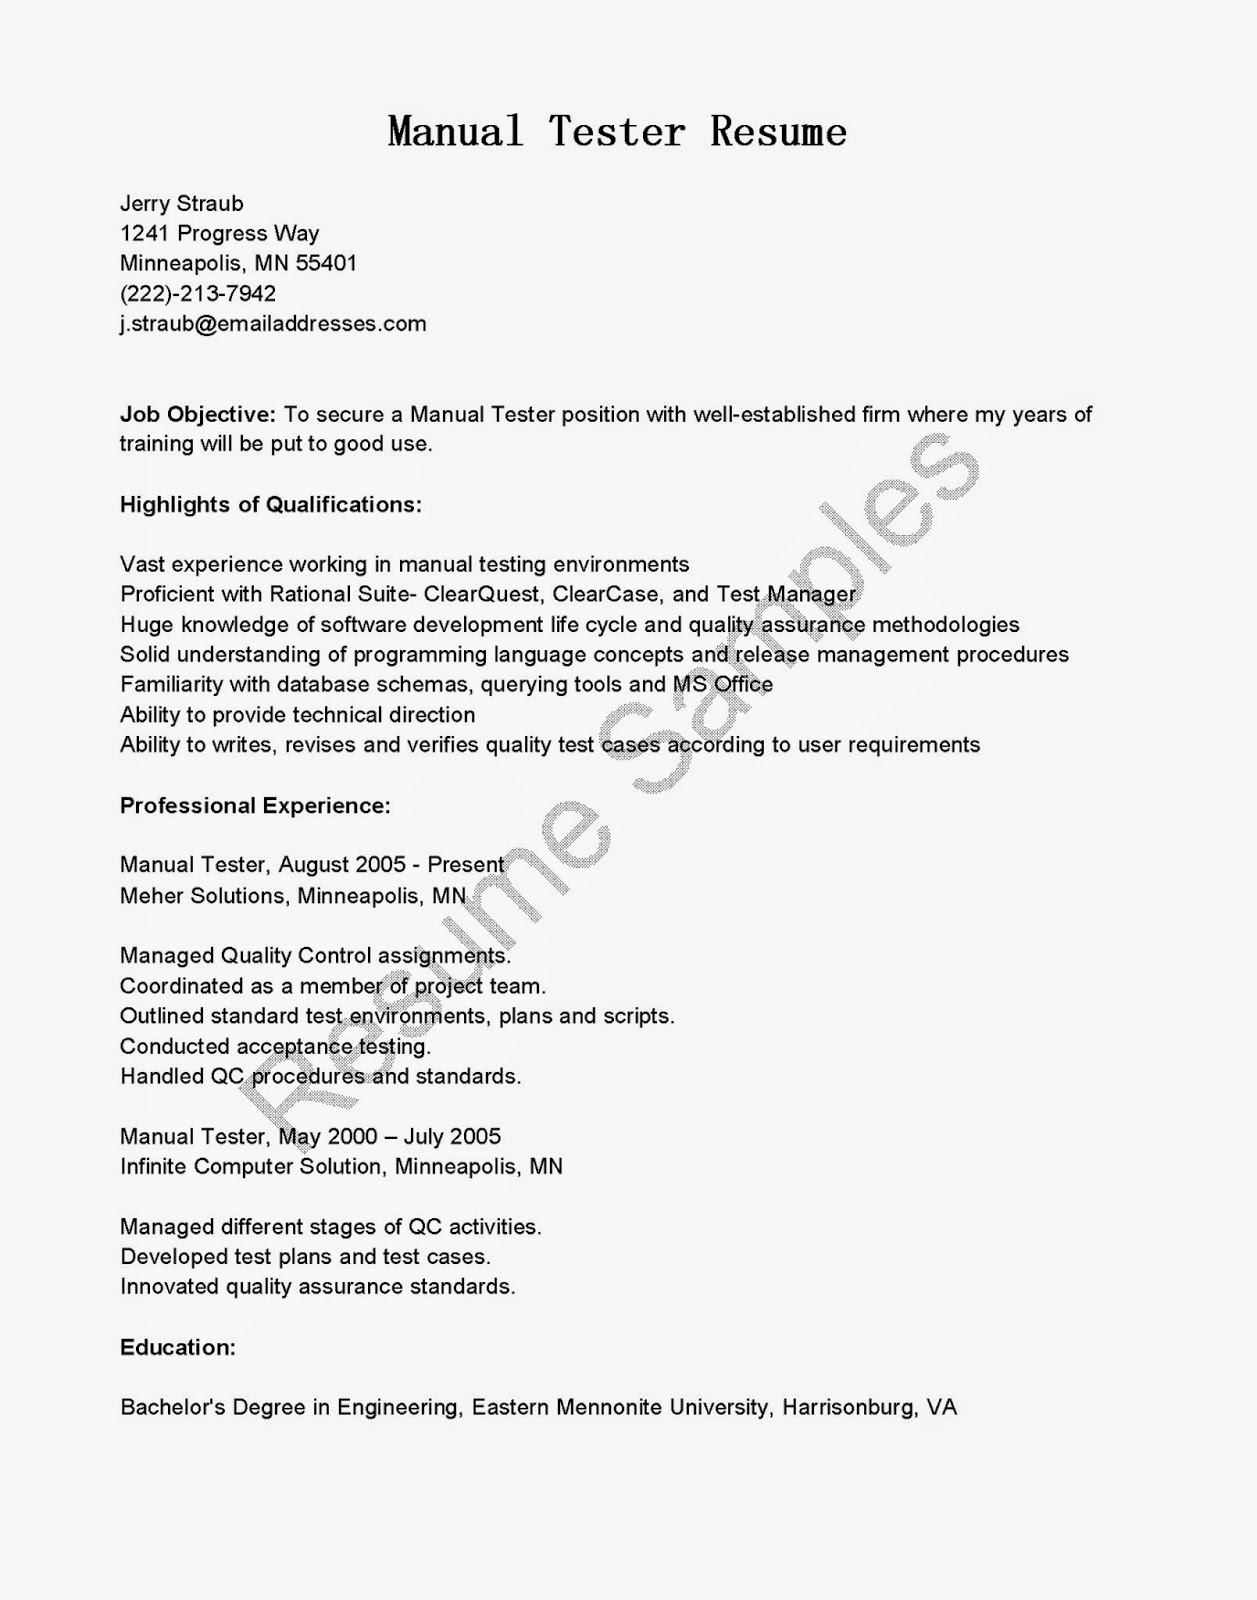 Awesome 1 Page Resume Format Tall 1 Page Resumes Examples Rectangular 10 Best Resumes 10 Envelope Template Old 10 Label Template Soft100 Free Printable Resume Builder Qa Tester Resume Samples